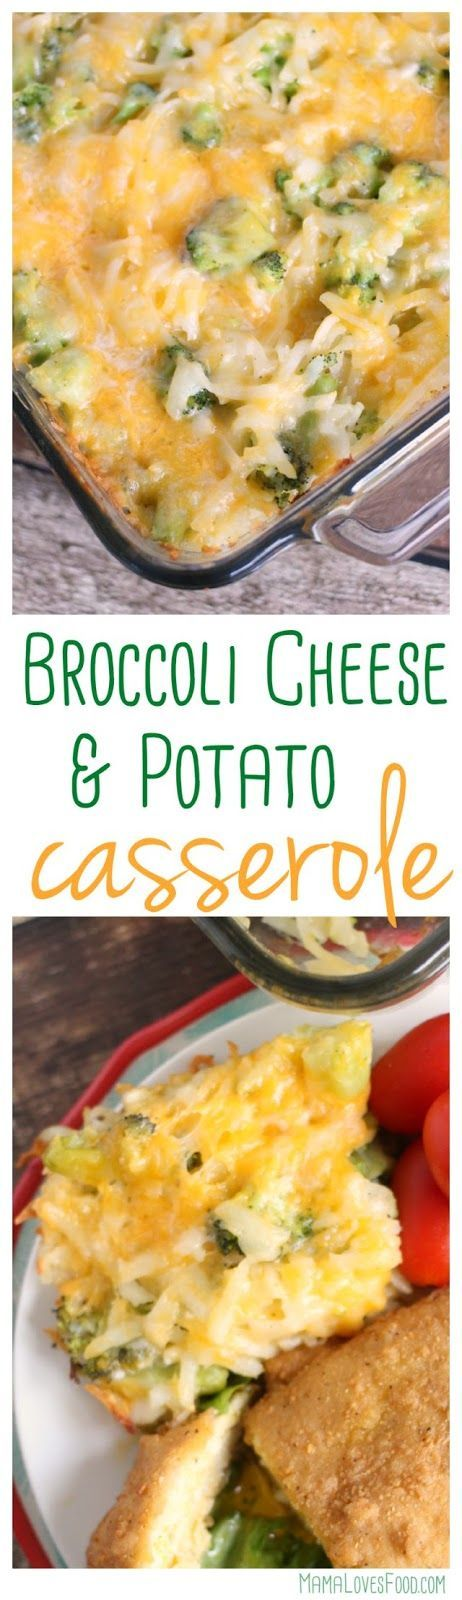 Broccoli Cheese Potato Casserole and Chicken Kiev